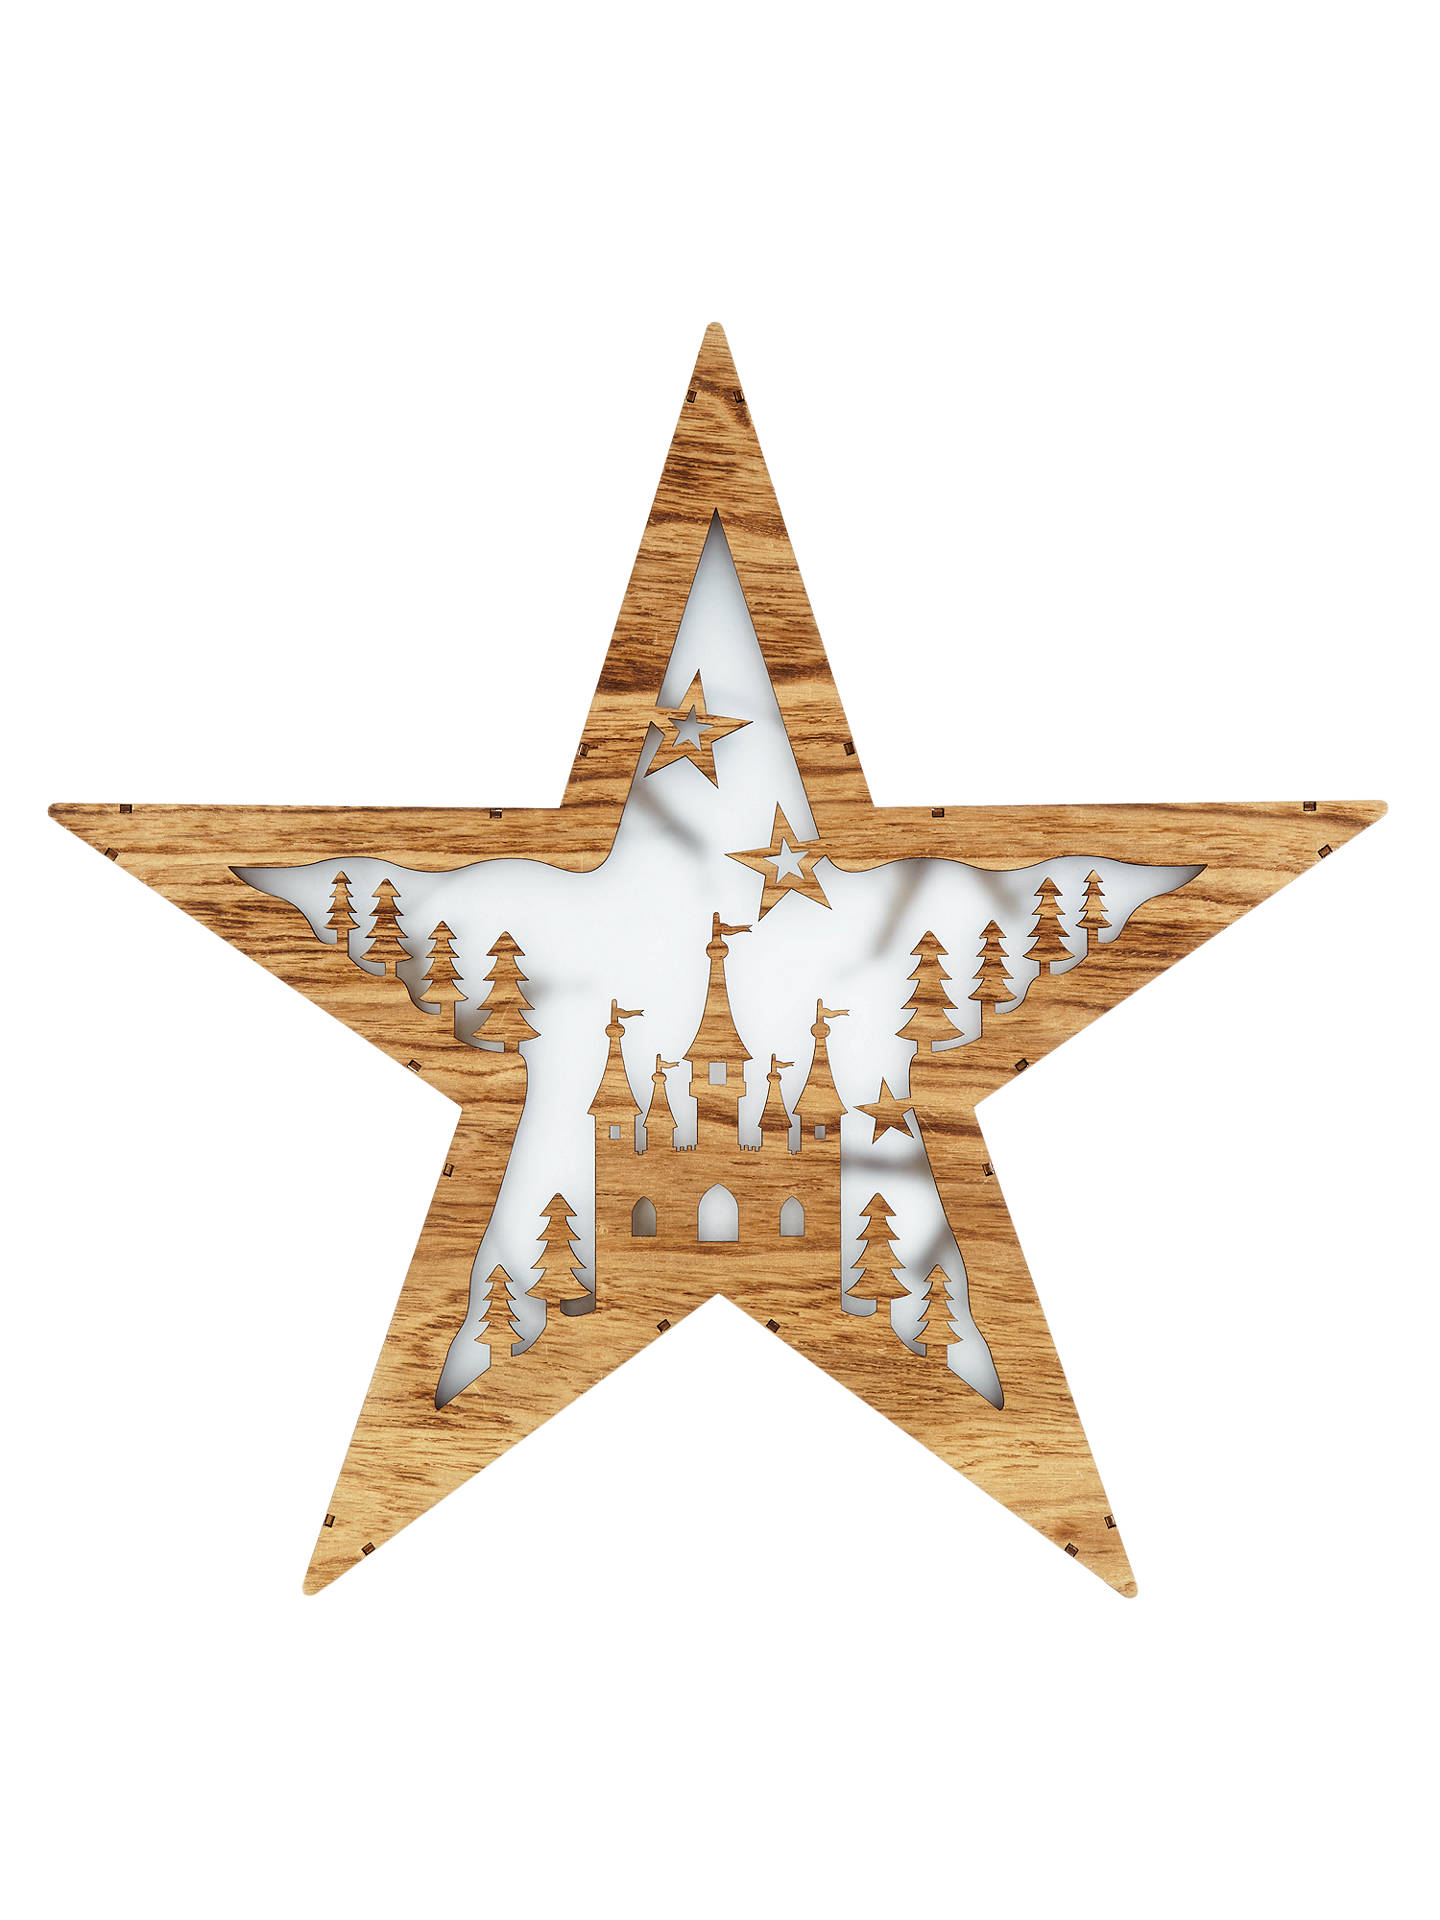 V Pro Dimmer >> John Lewis Natural Holographic Star Christmas Light, Warm ...